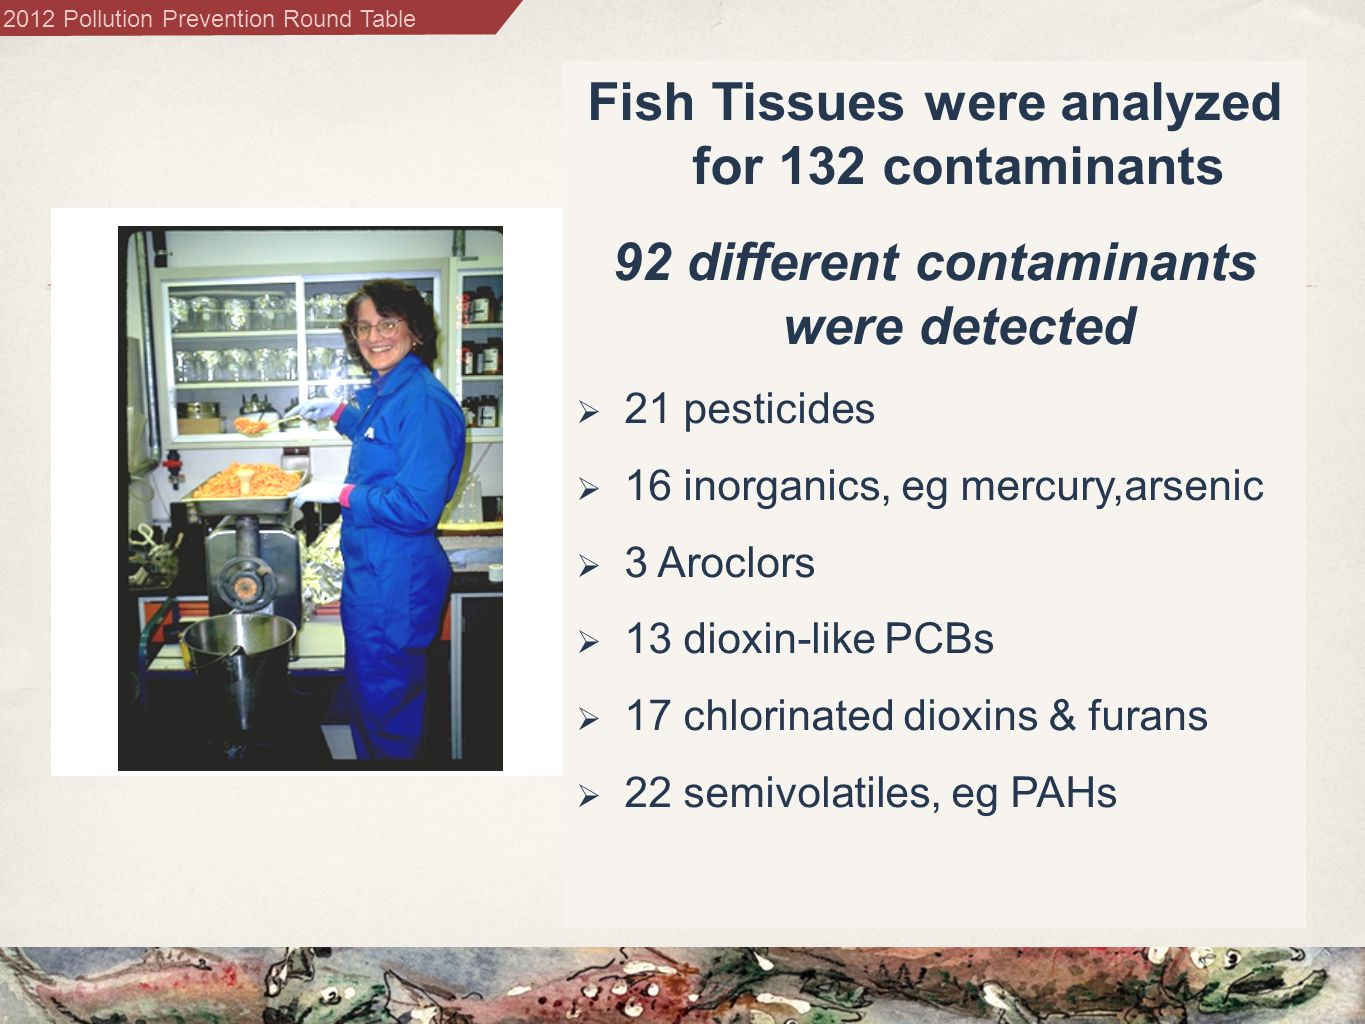 2012 Pollution Prevention Round Table Fish Tissues were analyzed for 132 contaminants 92 different contaminants were detected  21 pesticides  16 inorganics, eg mercury,arsenic  3 Aroclors  13 dioxin-like PCBs  17 chlorinated dioxins & furans  22 semivolatiles, eg PAHs